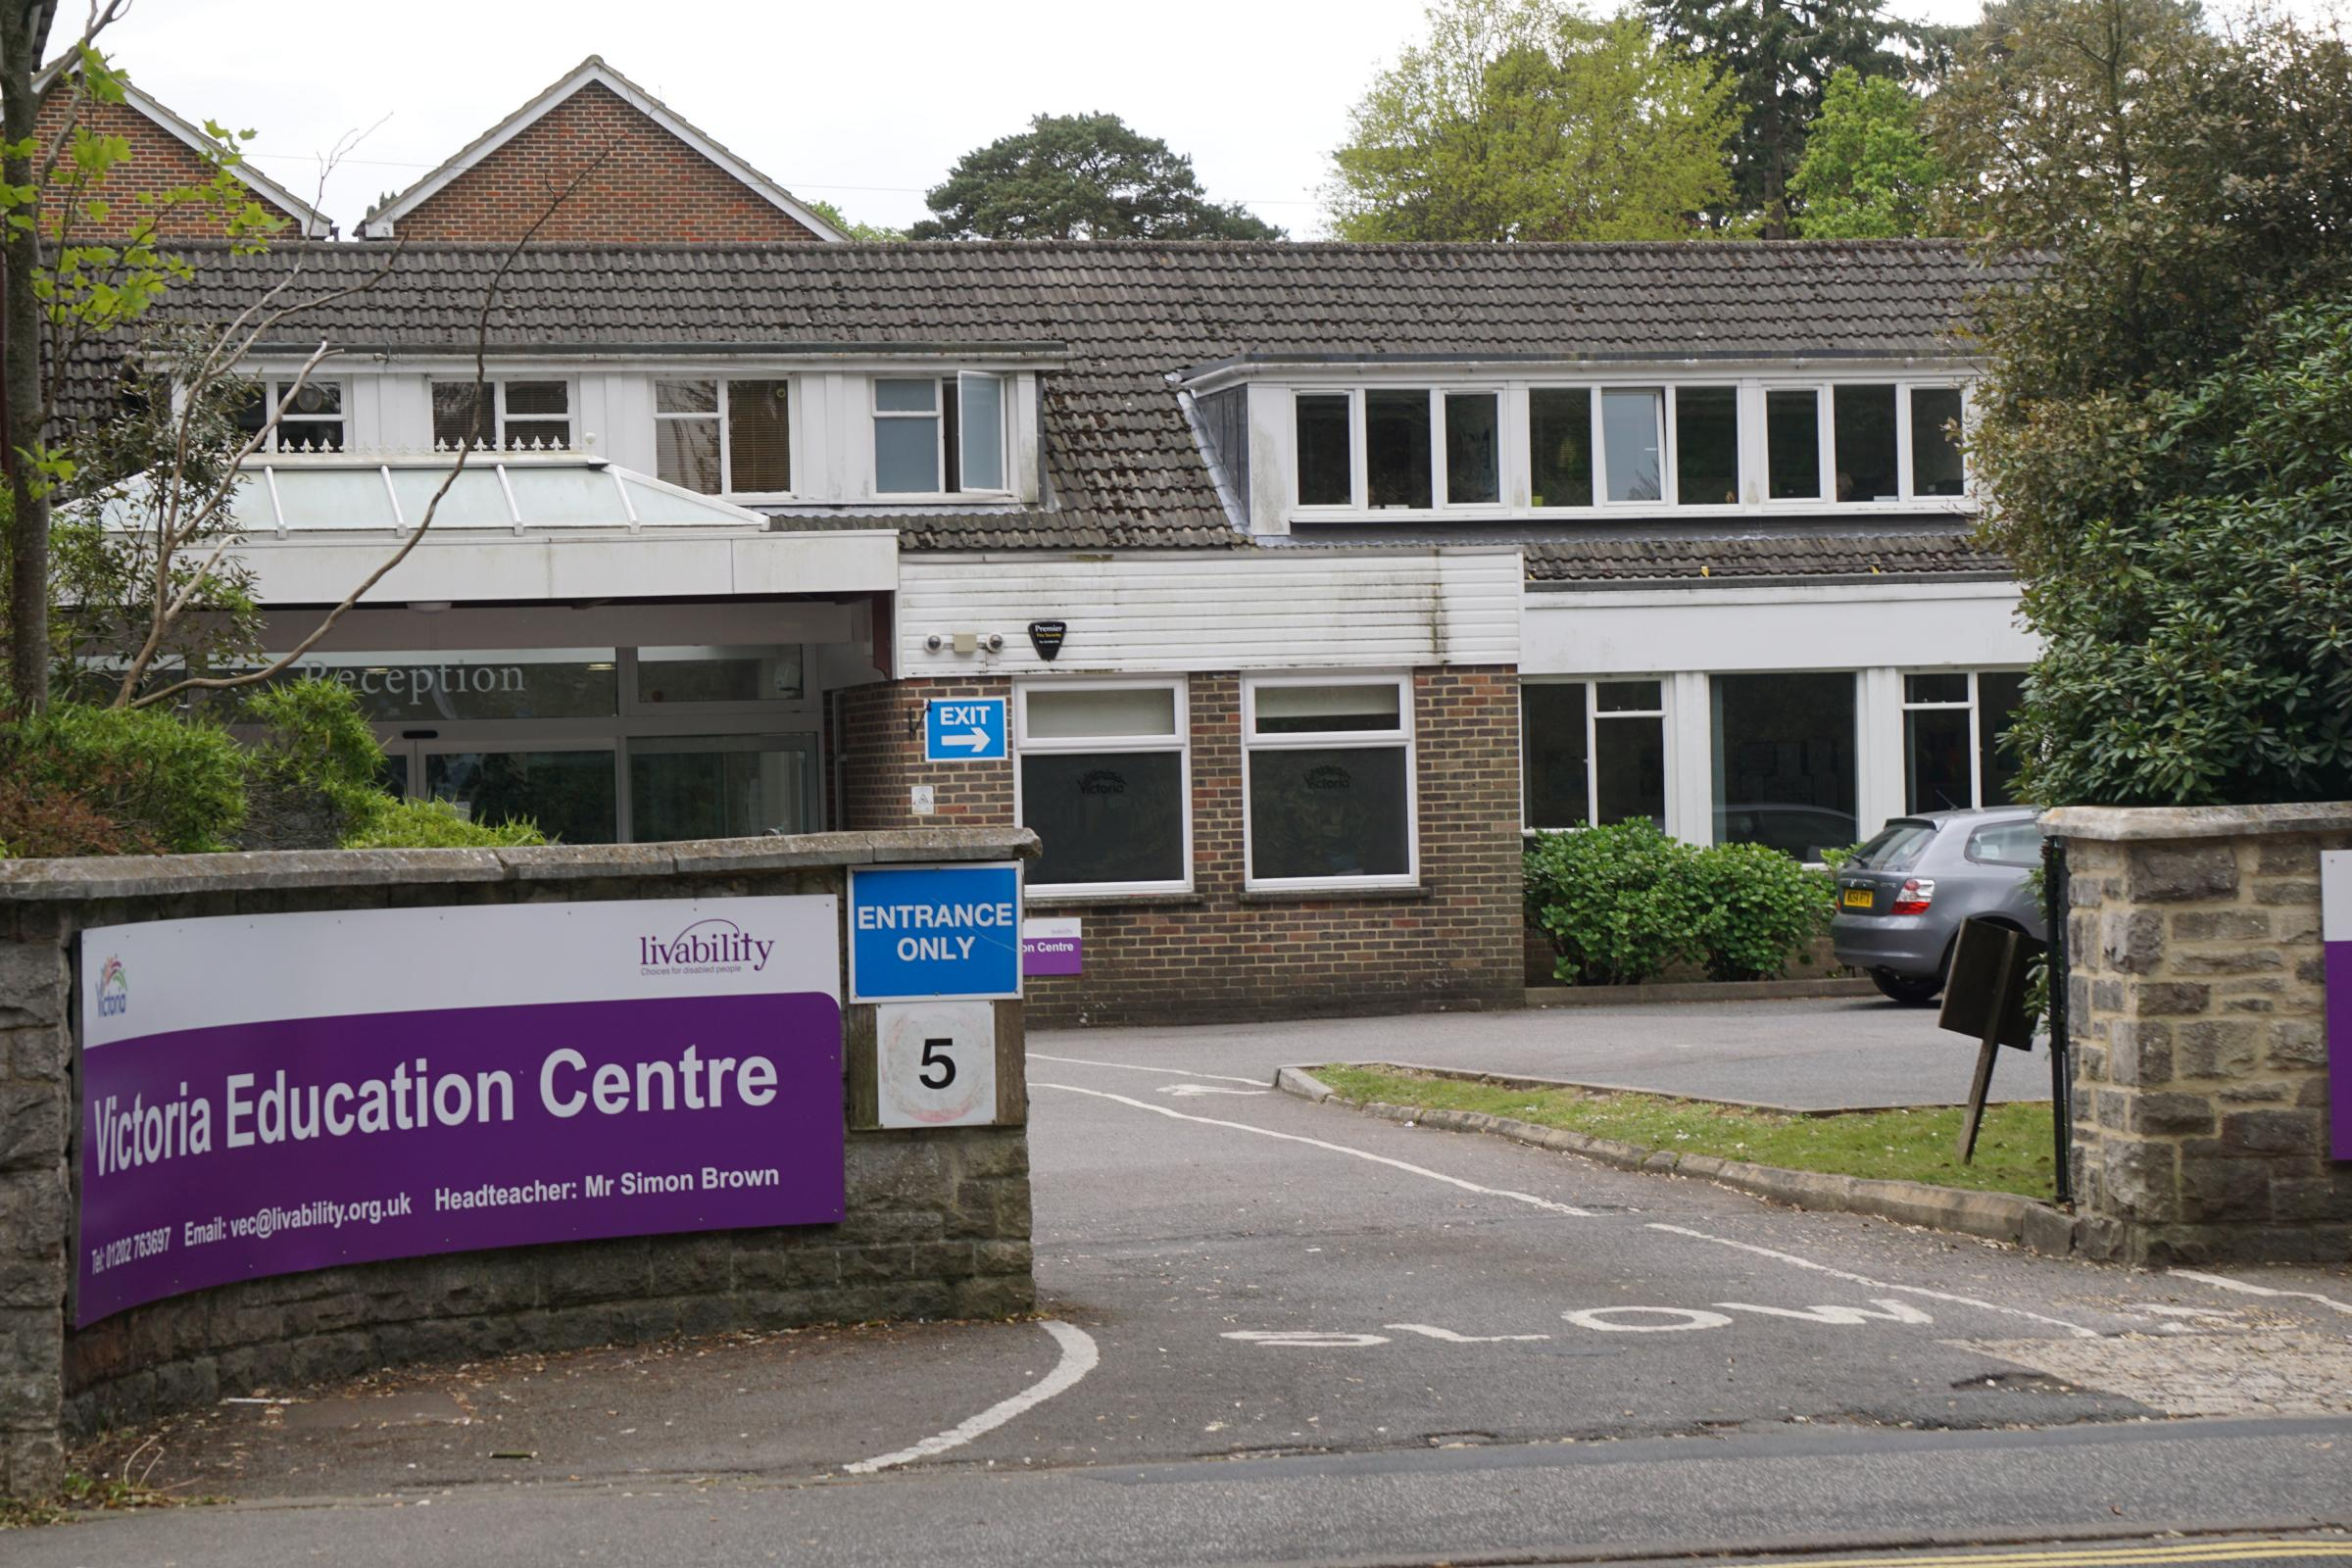 Victoria Children's Home to stay closed after Ofsted inspection